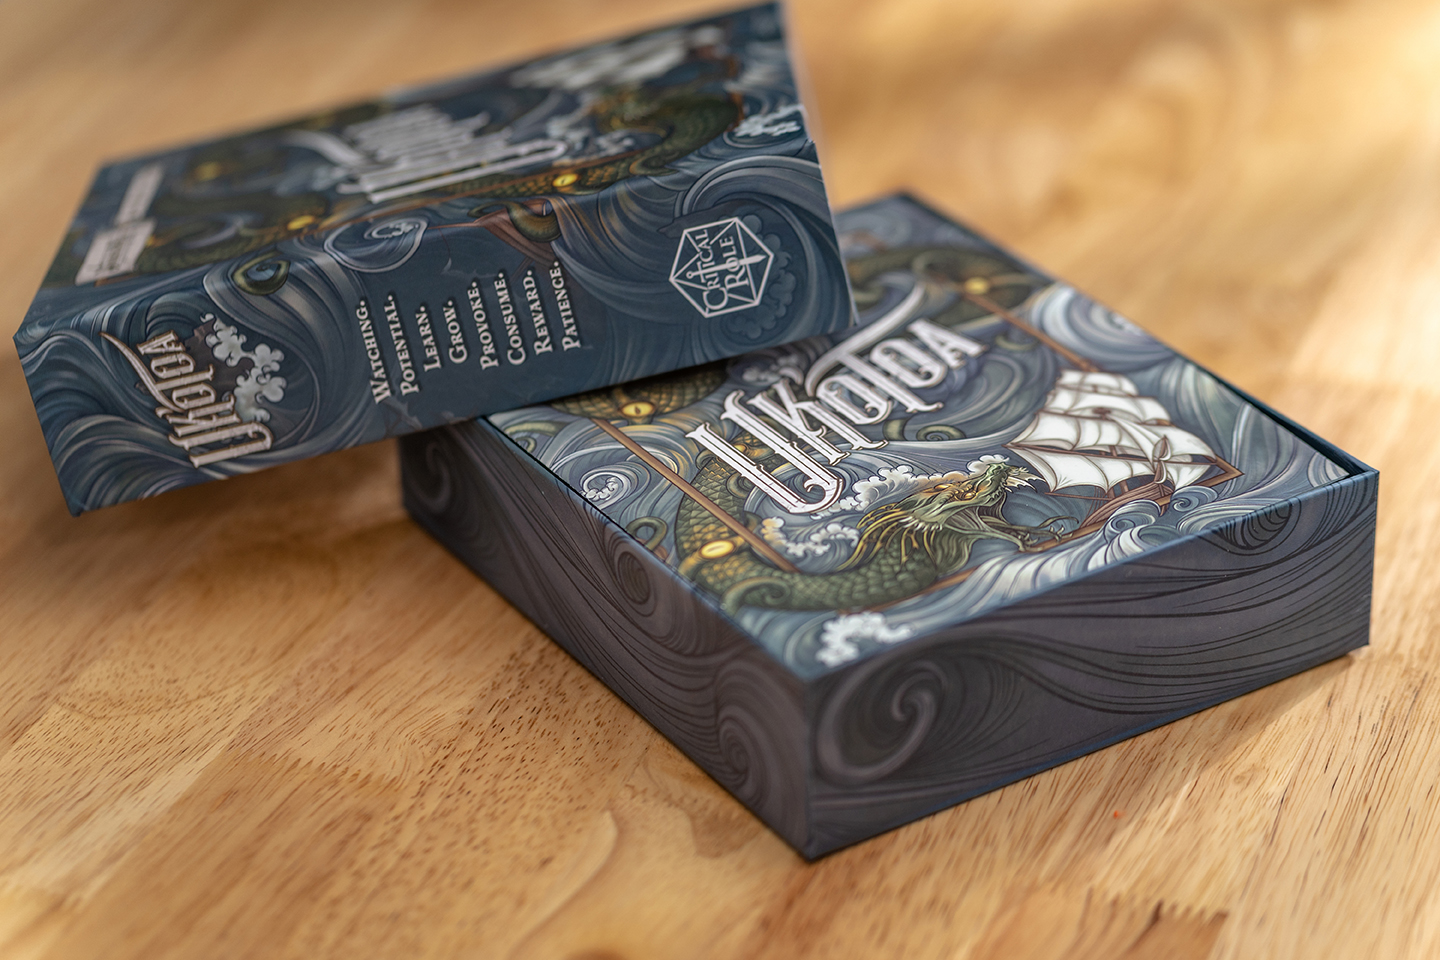 A photograph of the Uk'otoa box on a table, with the cover taken off and propped at a jaunty angle, revealing the rulebook on top of the contents inside.